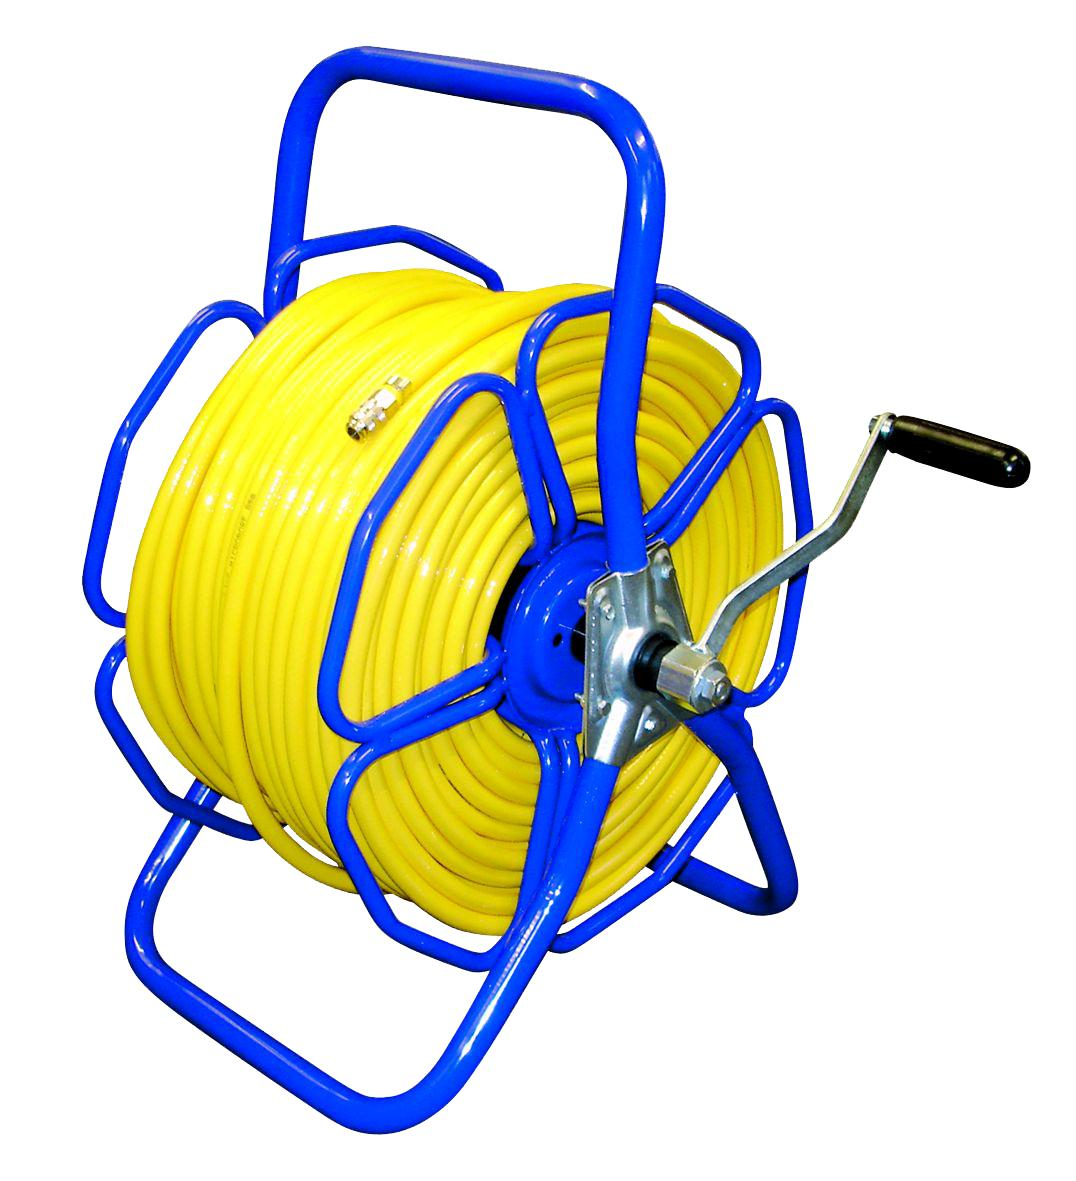 Metal Freestanding Hose and Fitting Kit